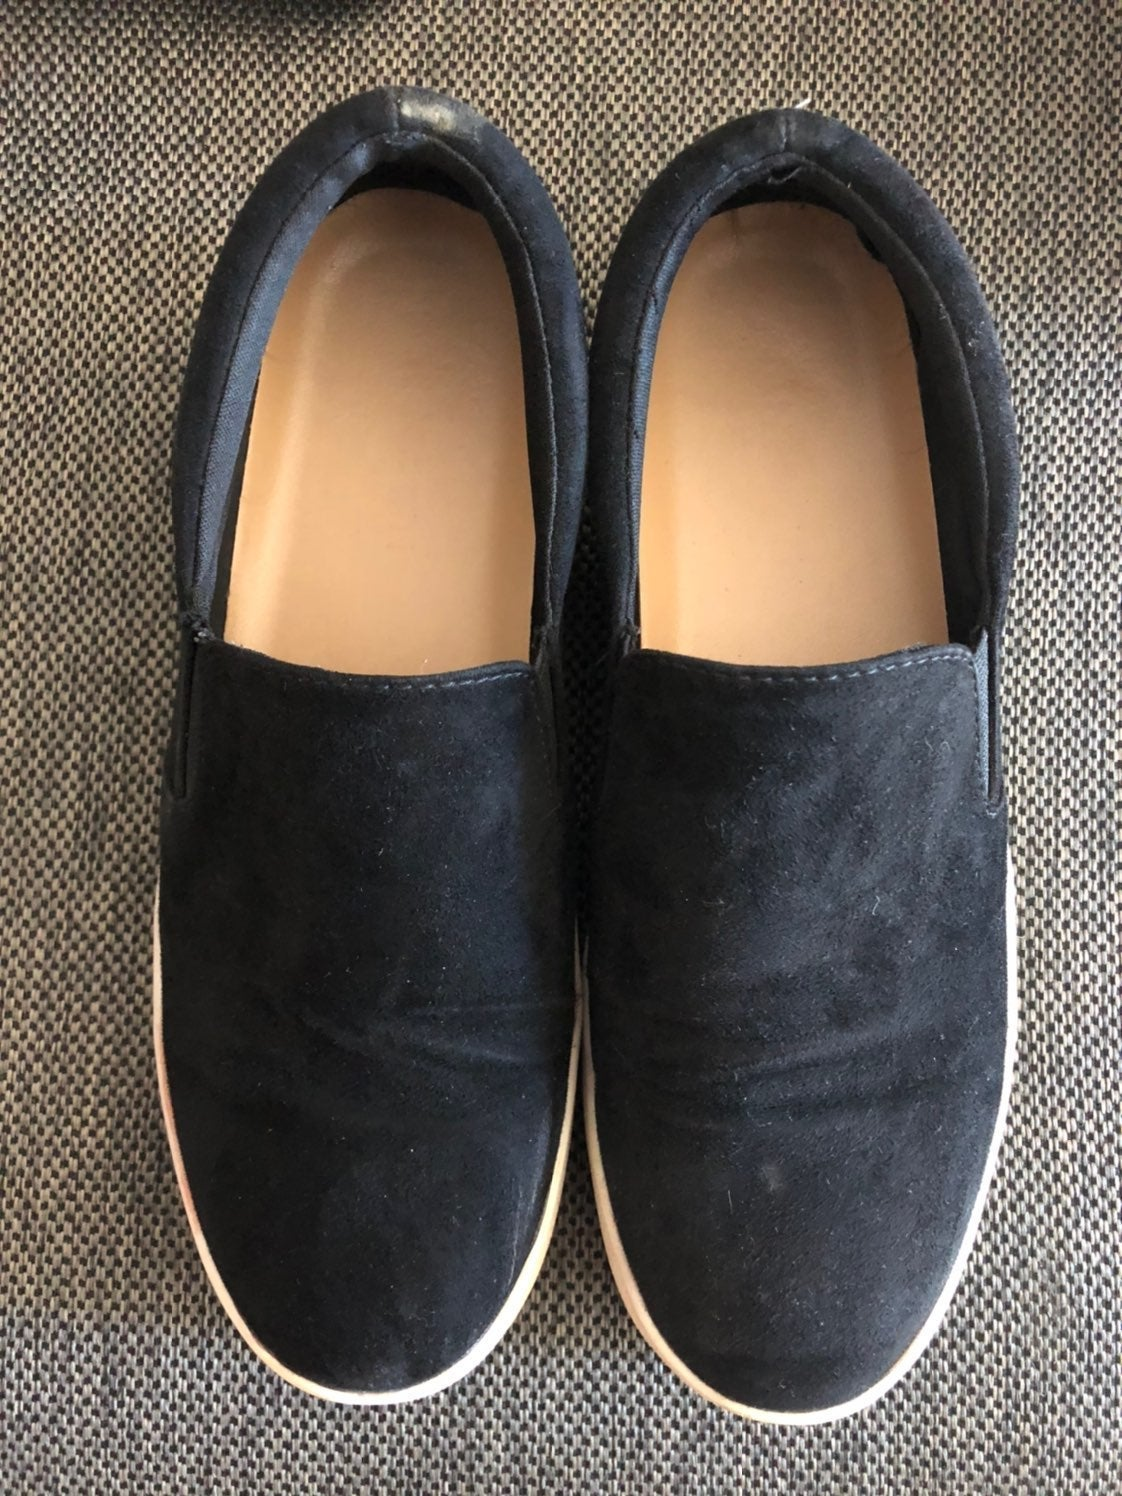 platform canvas shoes